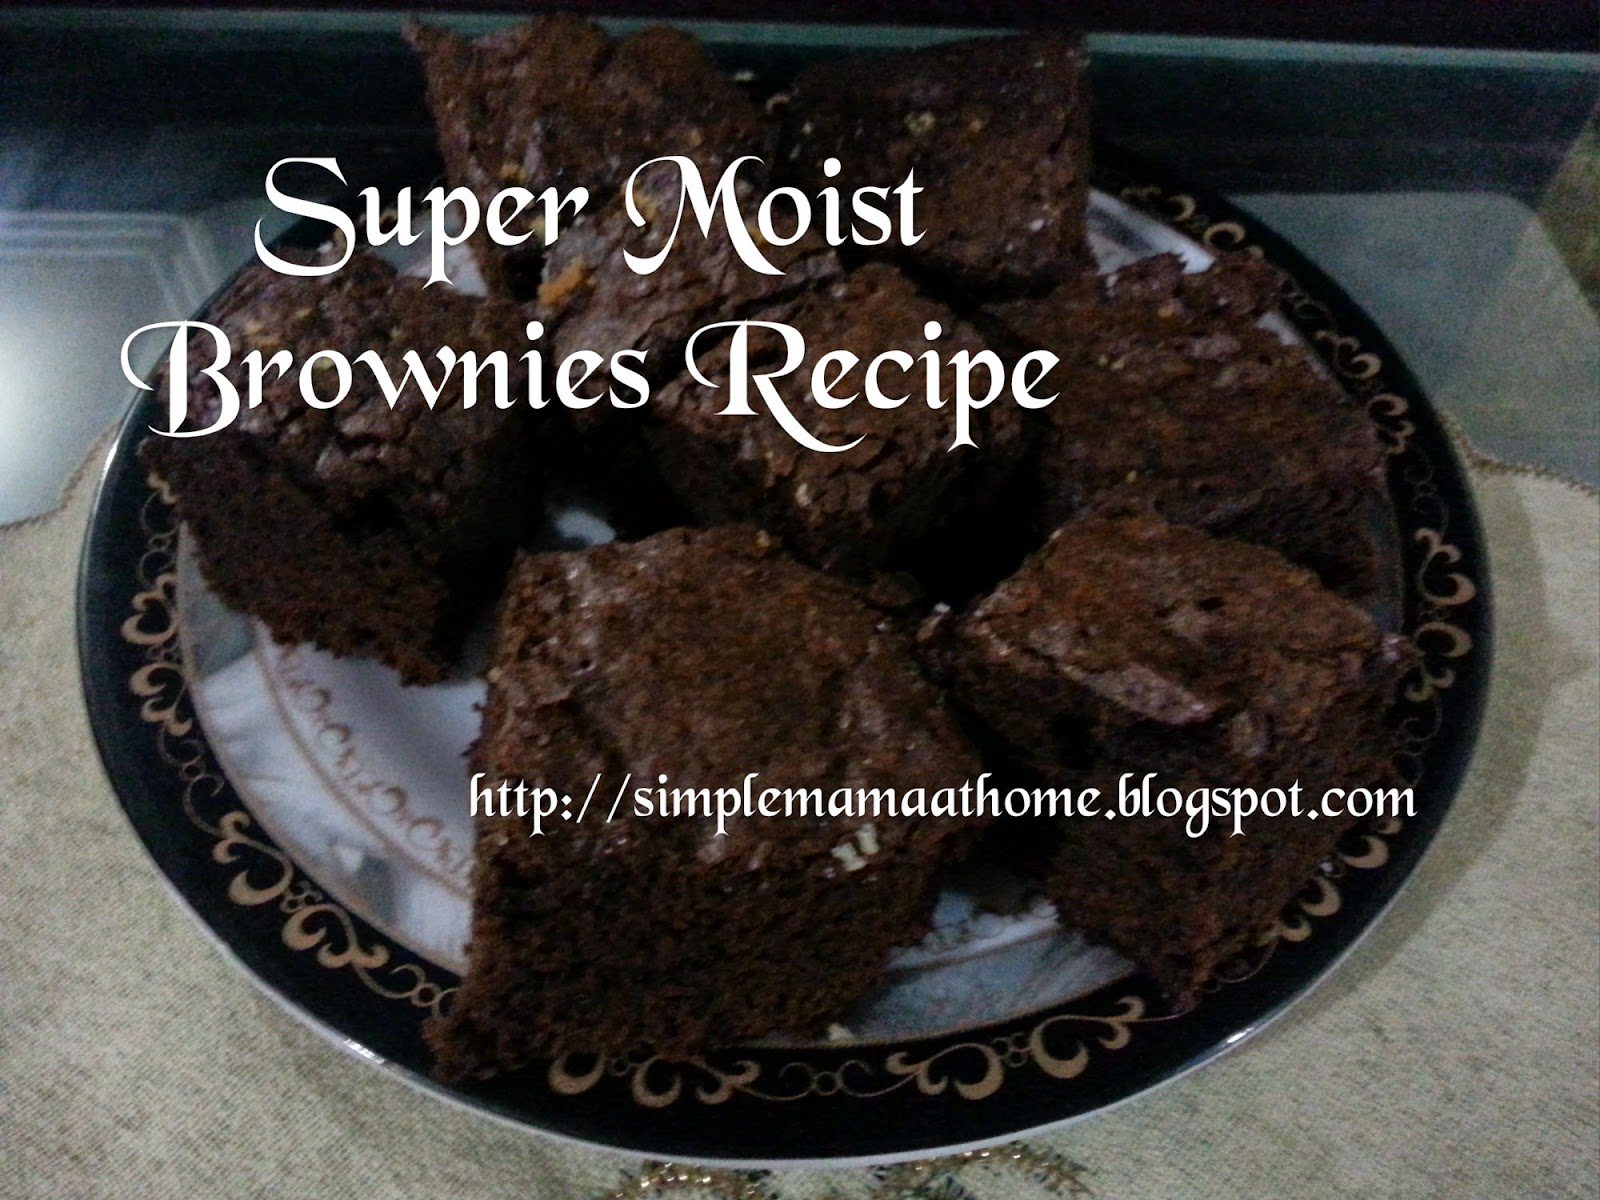 Super Moist Brownies Recipe